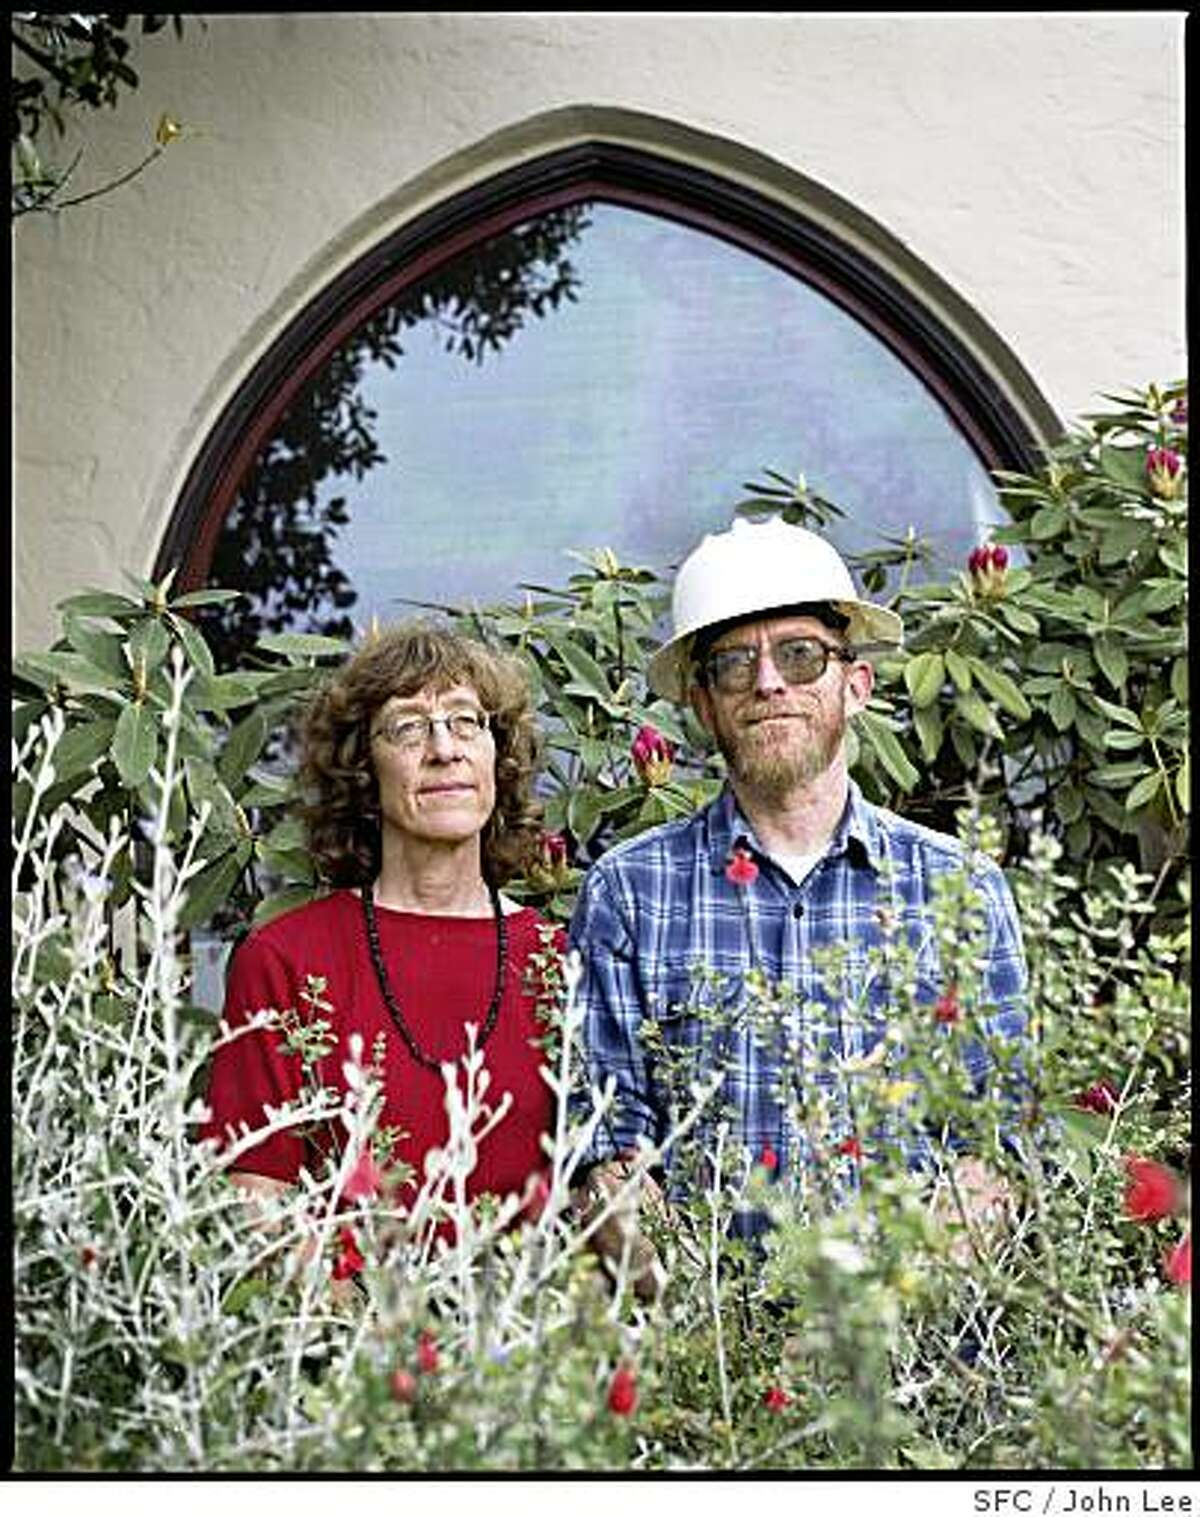 MAG_GREEN22_01_JOHNLEE.JPG BERKELEY, CA - MAY 24: Liz Varnhagen (cq), left, and her husband Steve Greenberg (cq), standing in the front yard of their Berkeley home, the